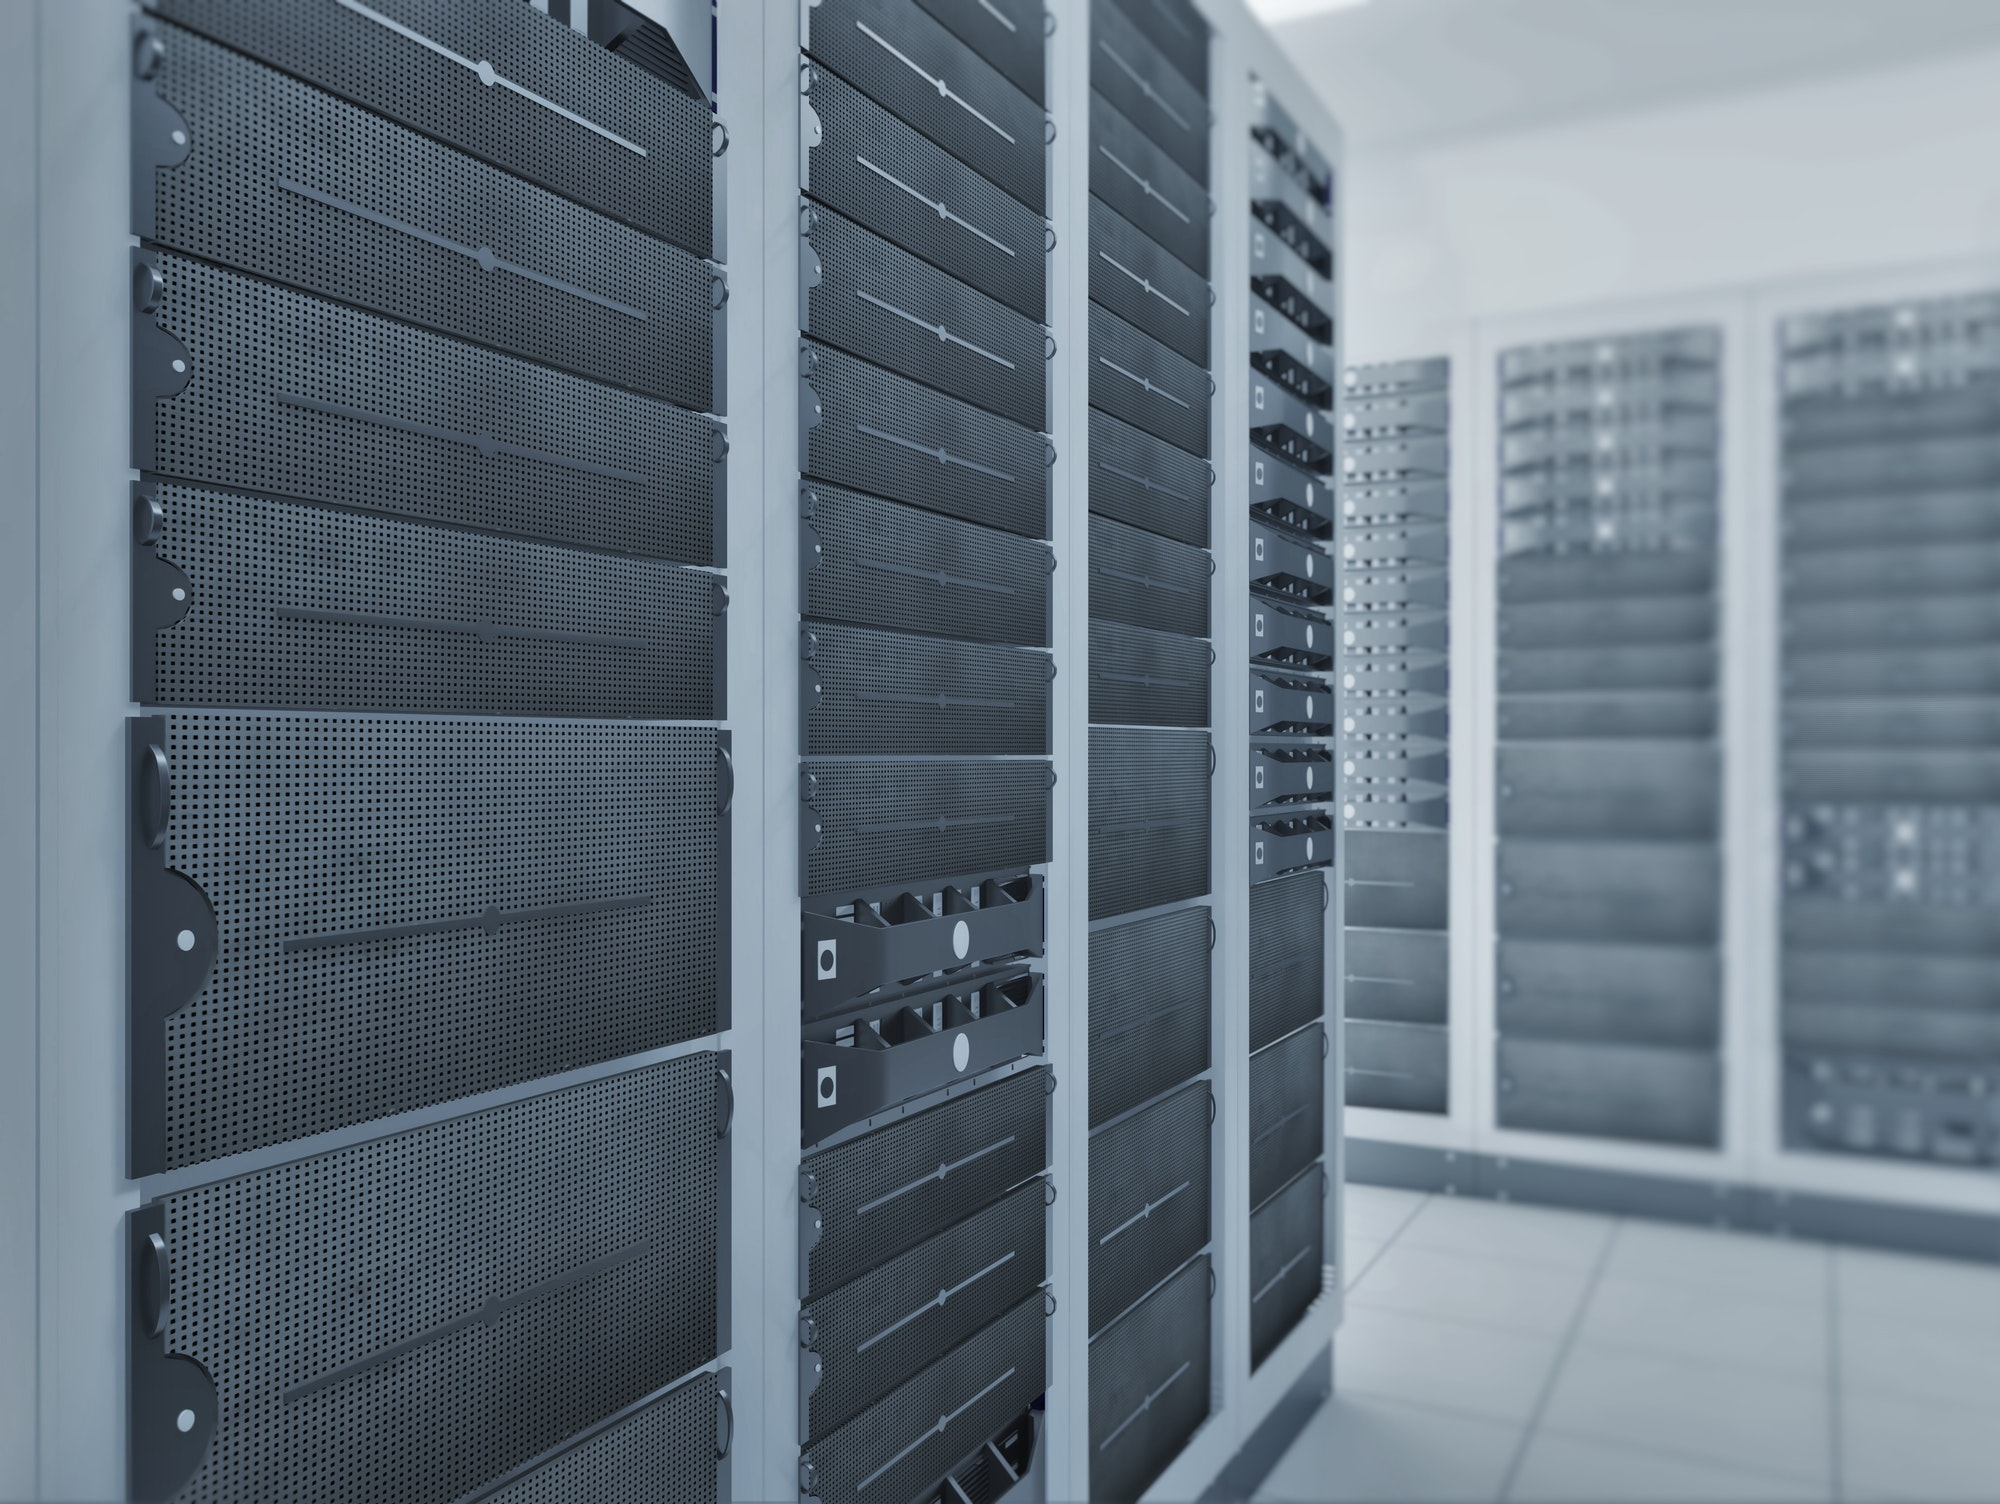 6 types of cloud migrations